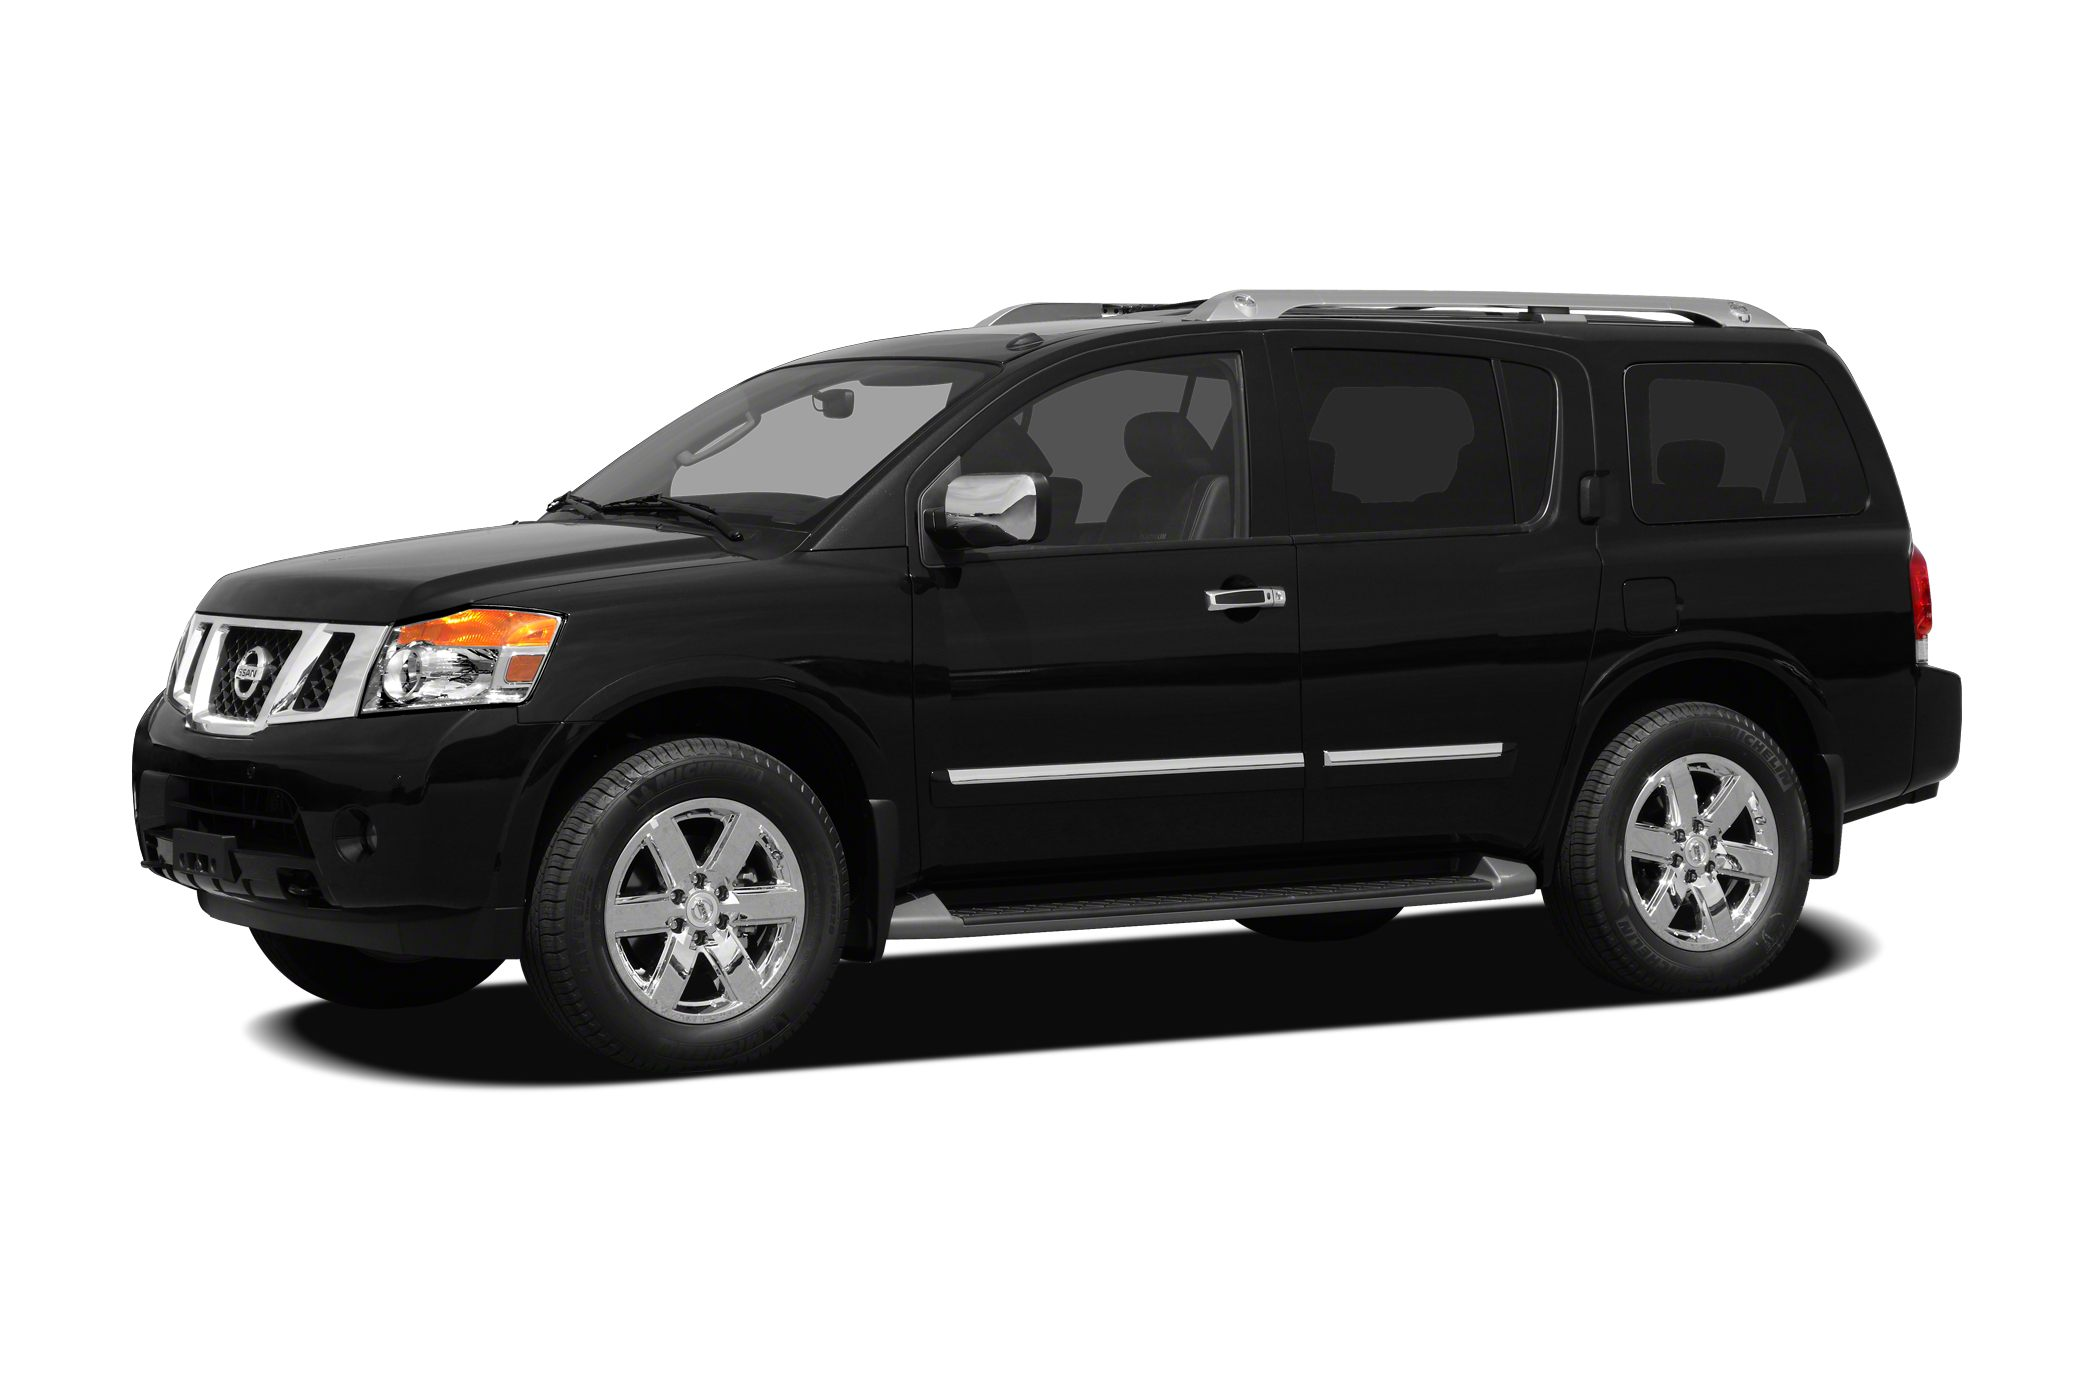 2010 Nissan Armada Platinum SUV for sale in Decatur for $24,995 with 82,491 miles